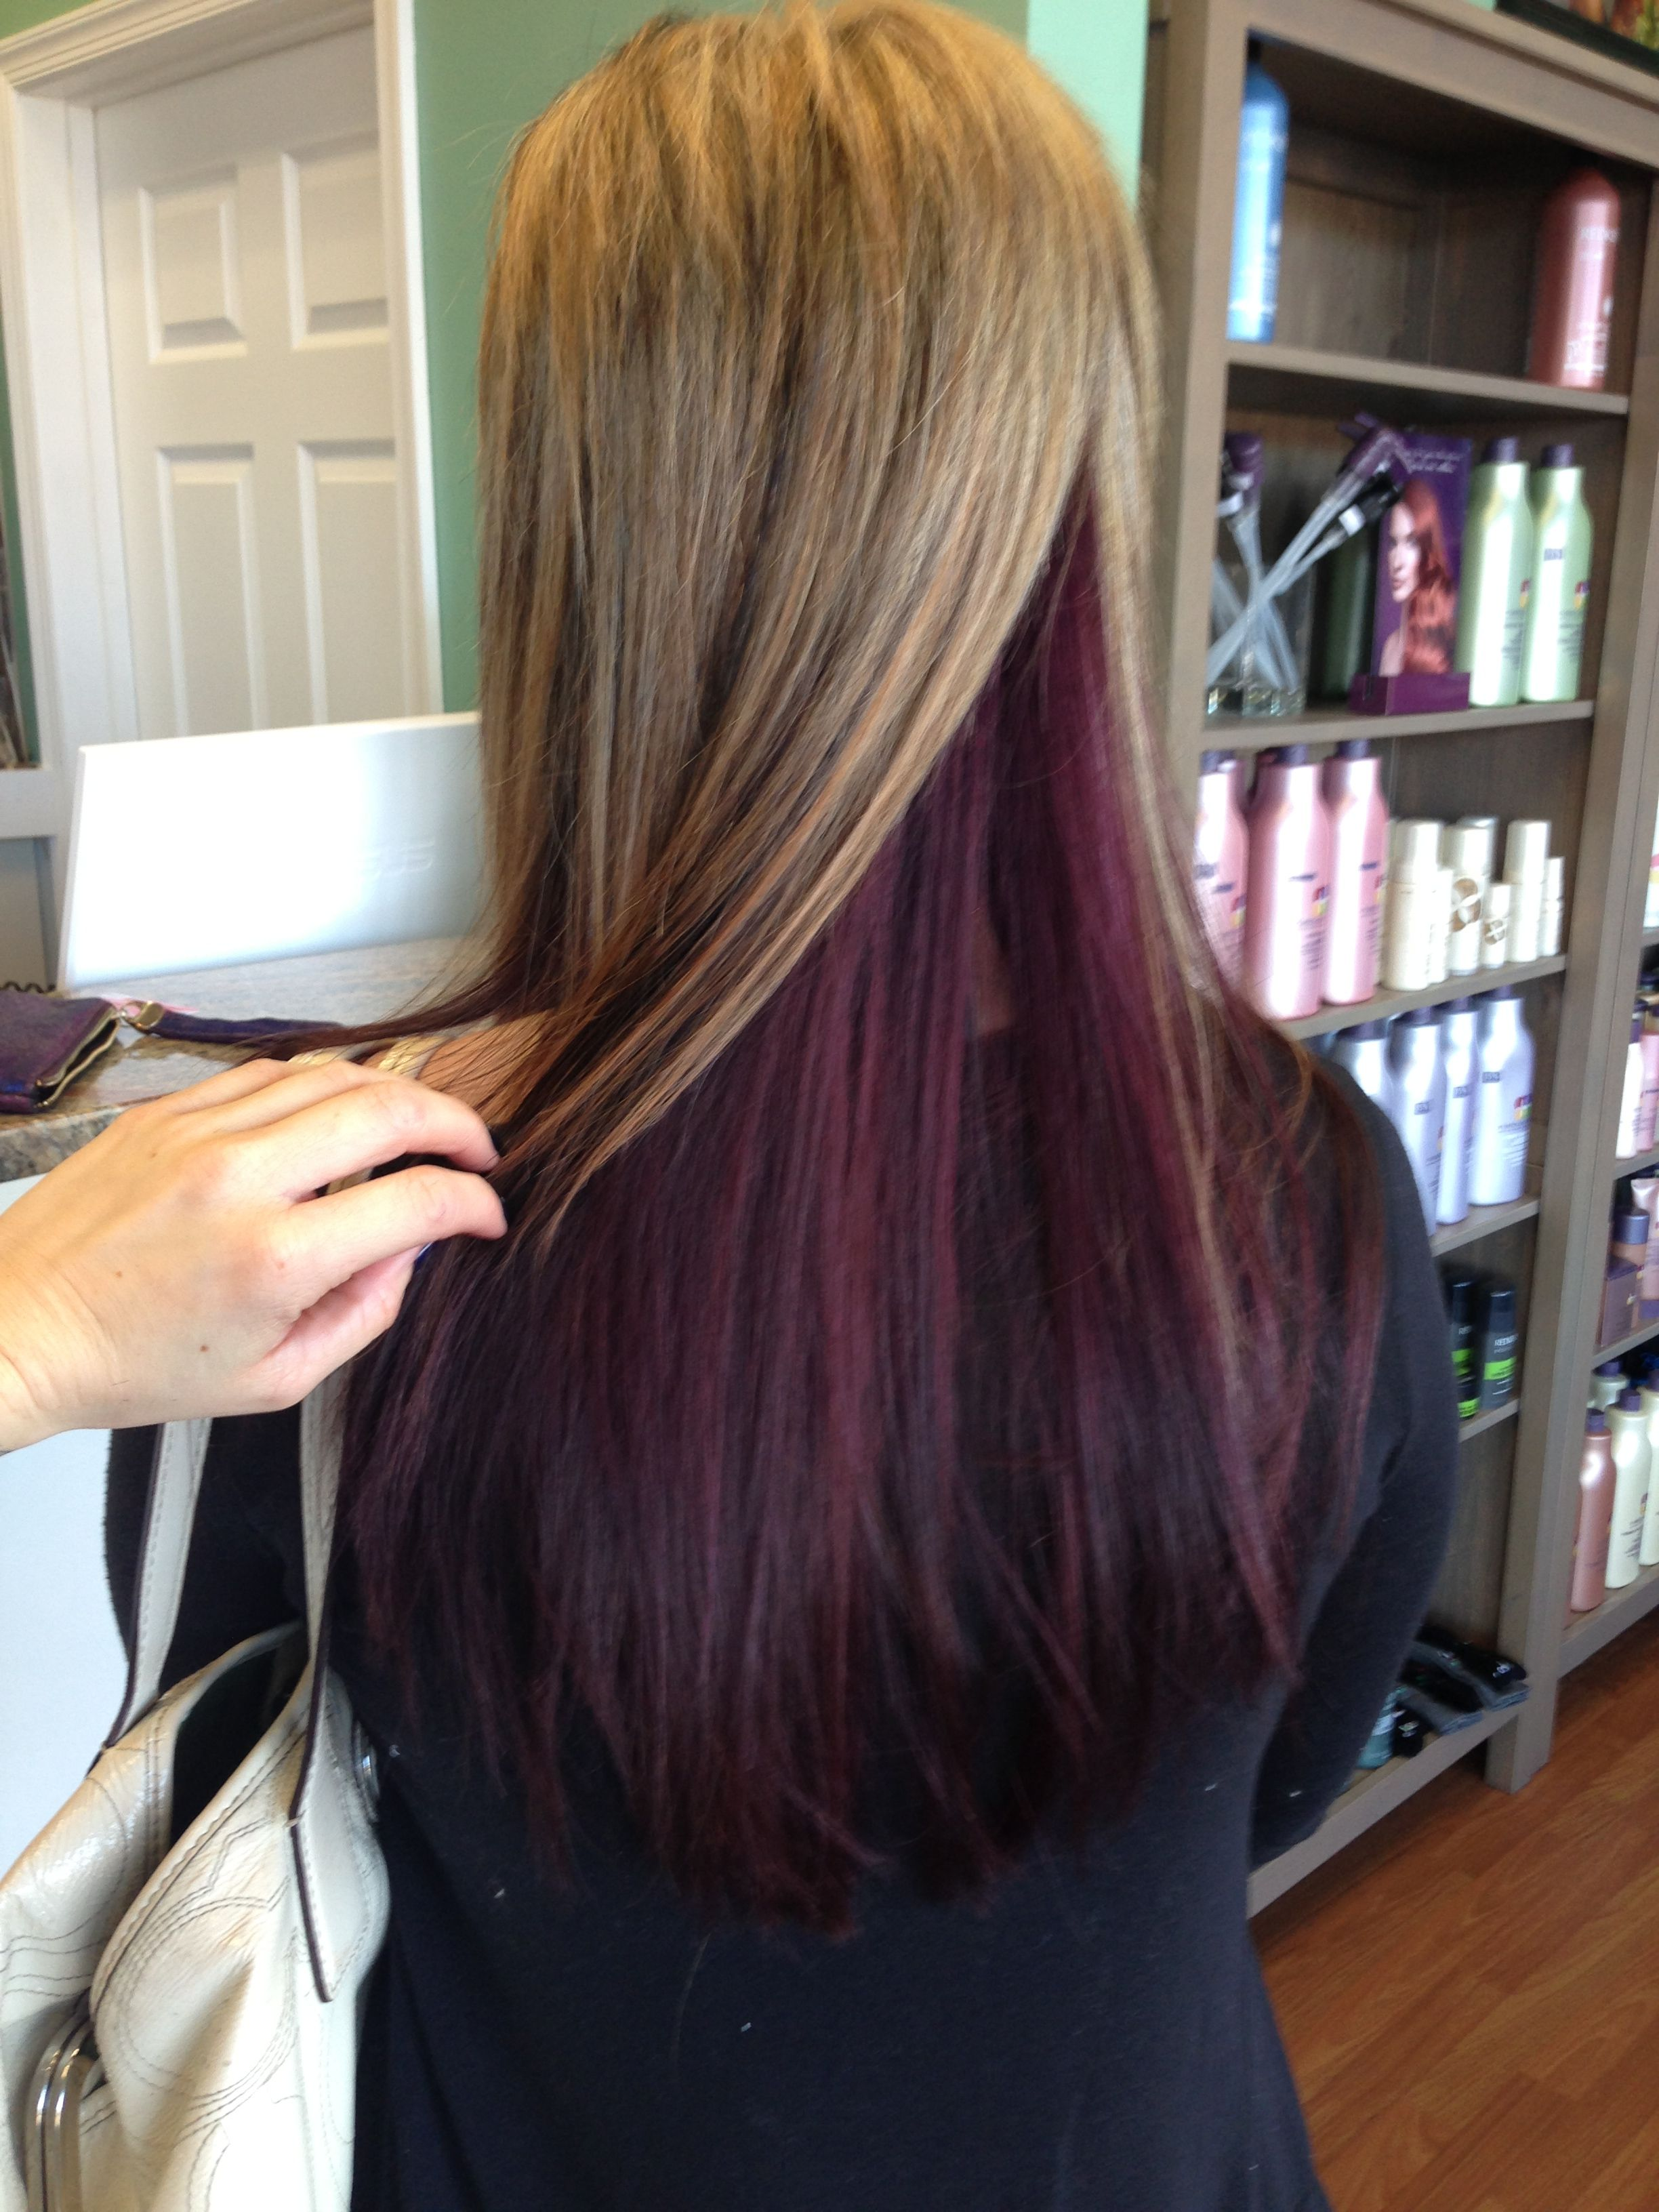 Red Hair With Black Underneath Google Search Black Hair Ombre Hair Color Trends Red Ombre Hair